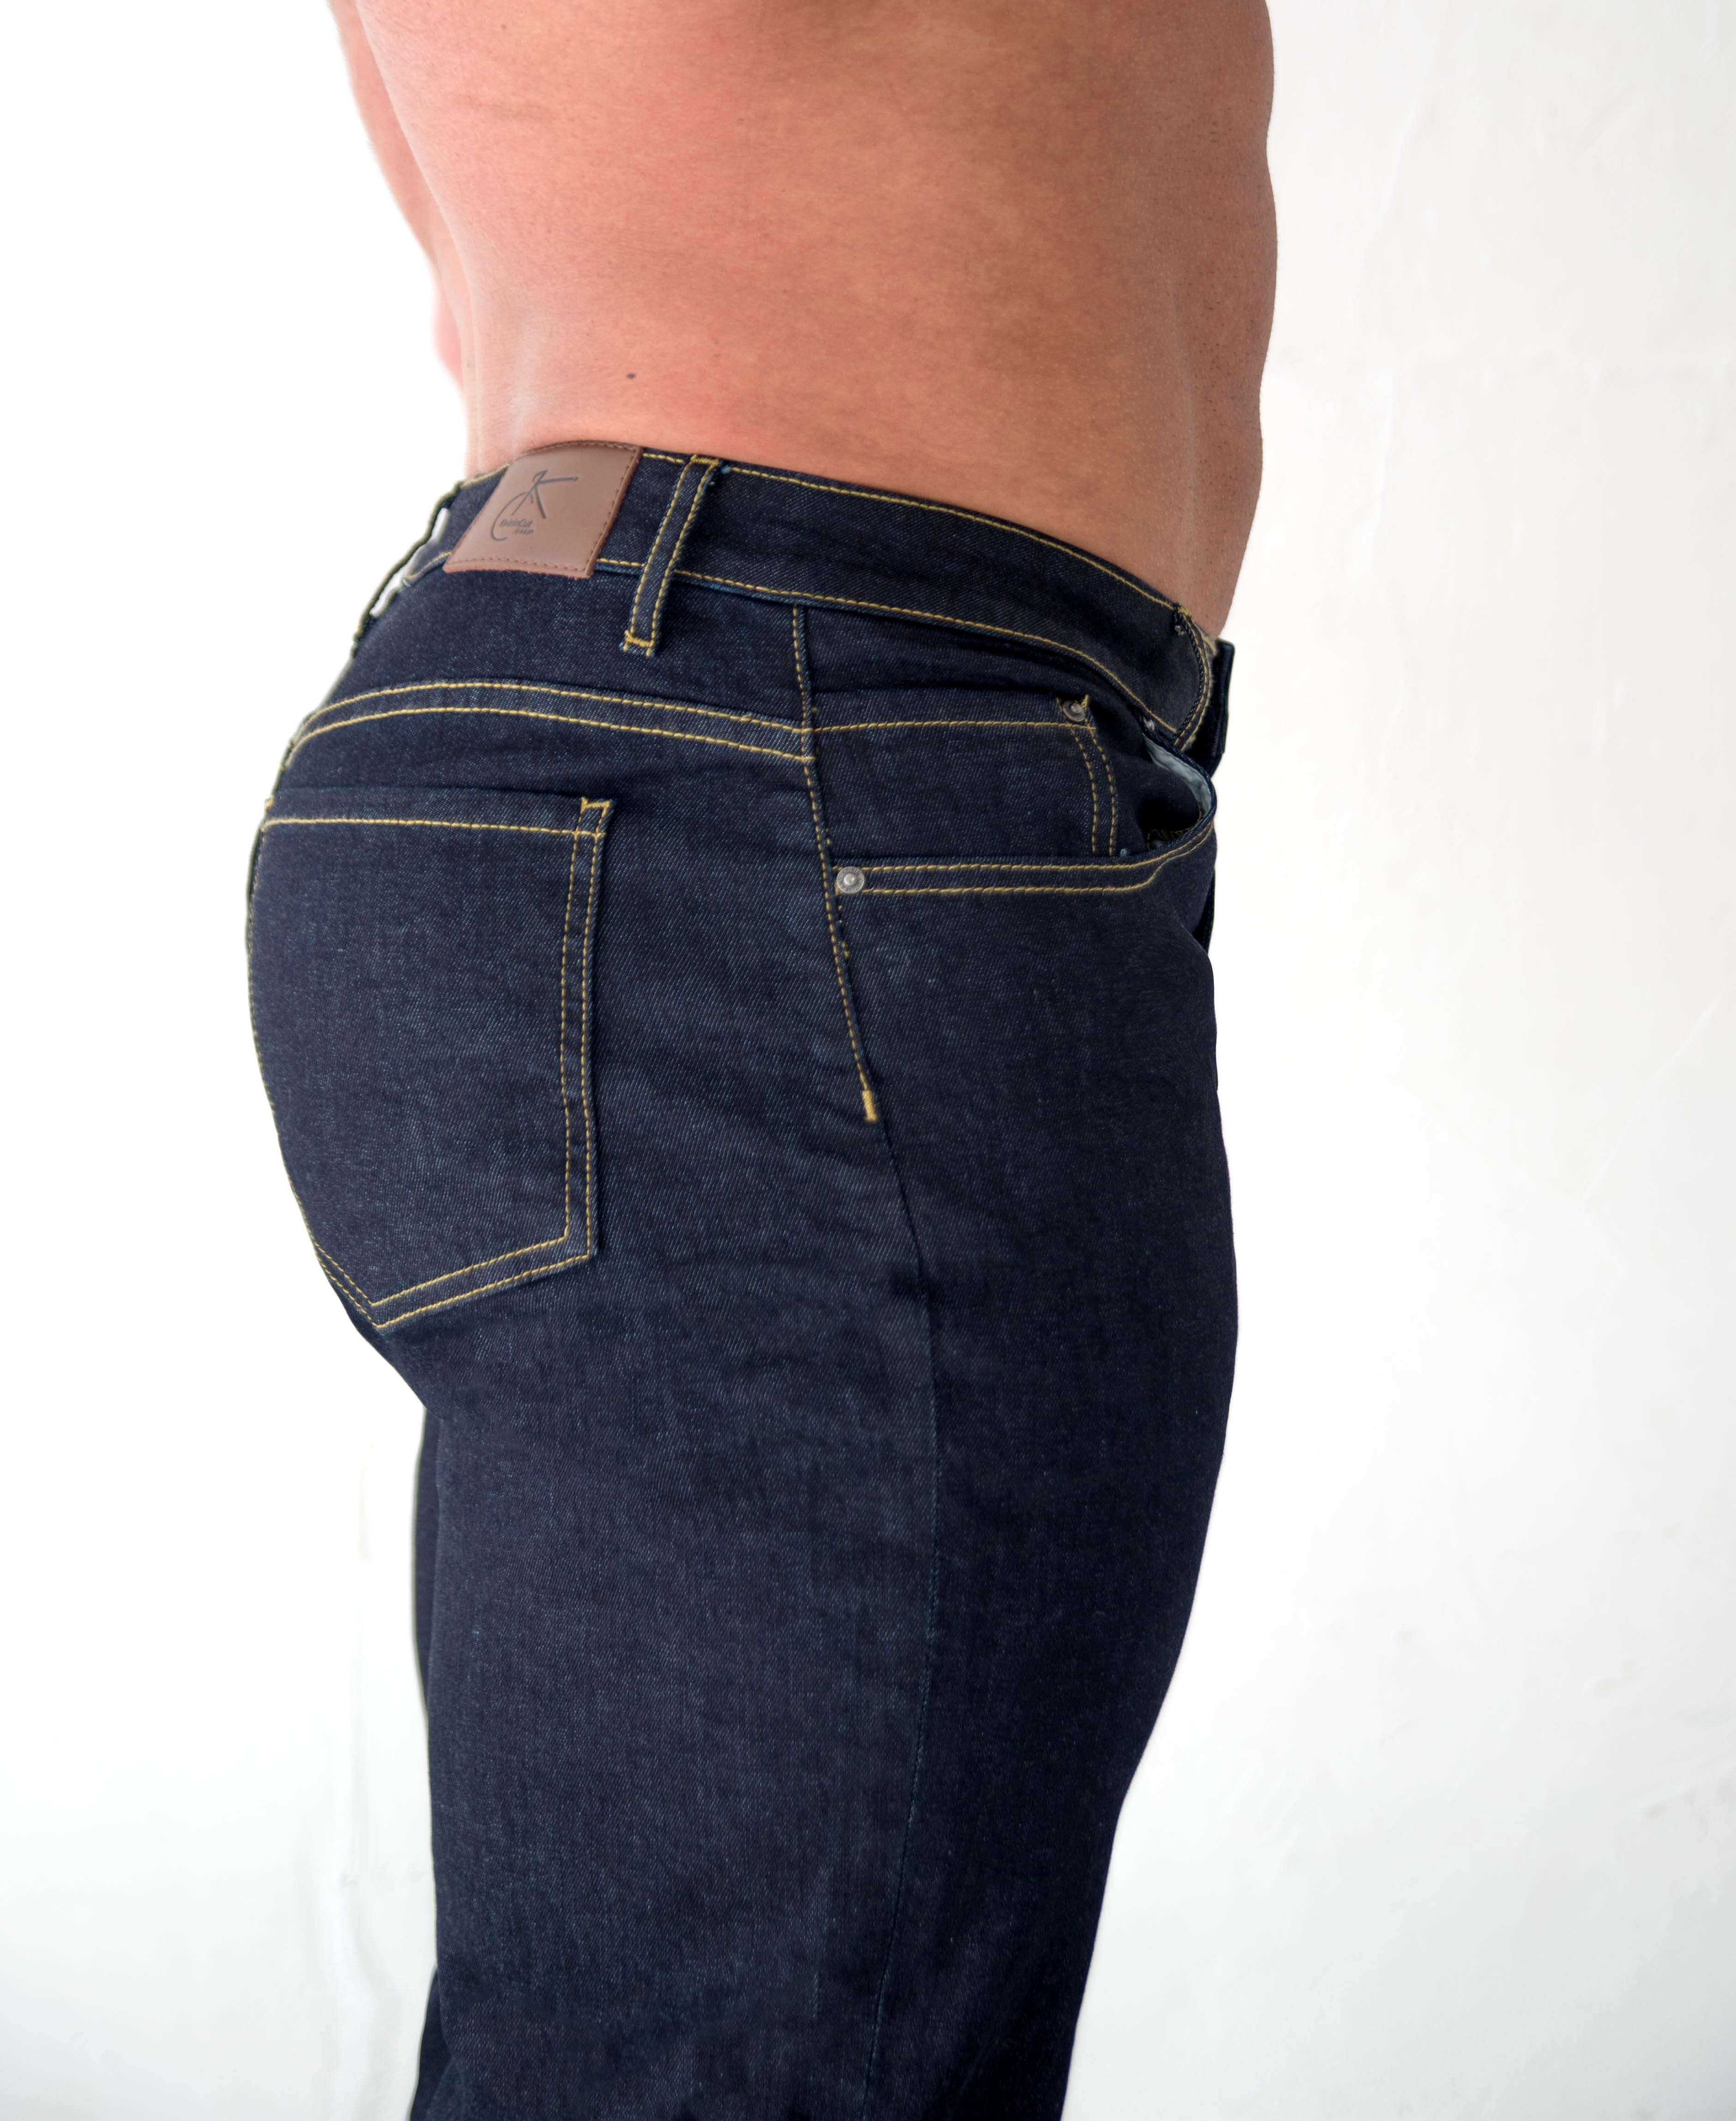 ... Men s Athletic Fit Jeans - Izu ... 260655cd950a